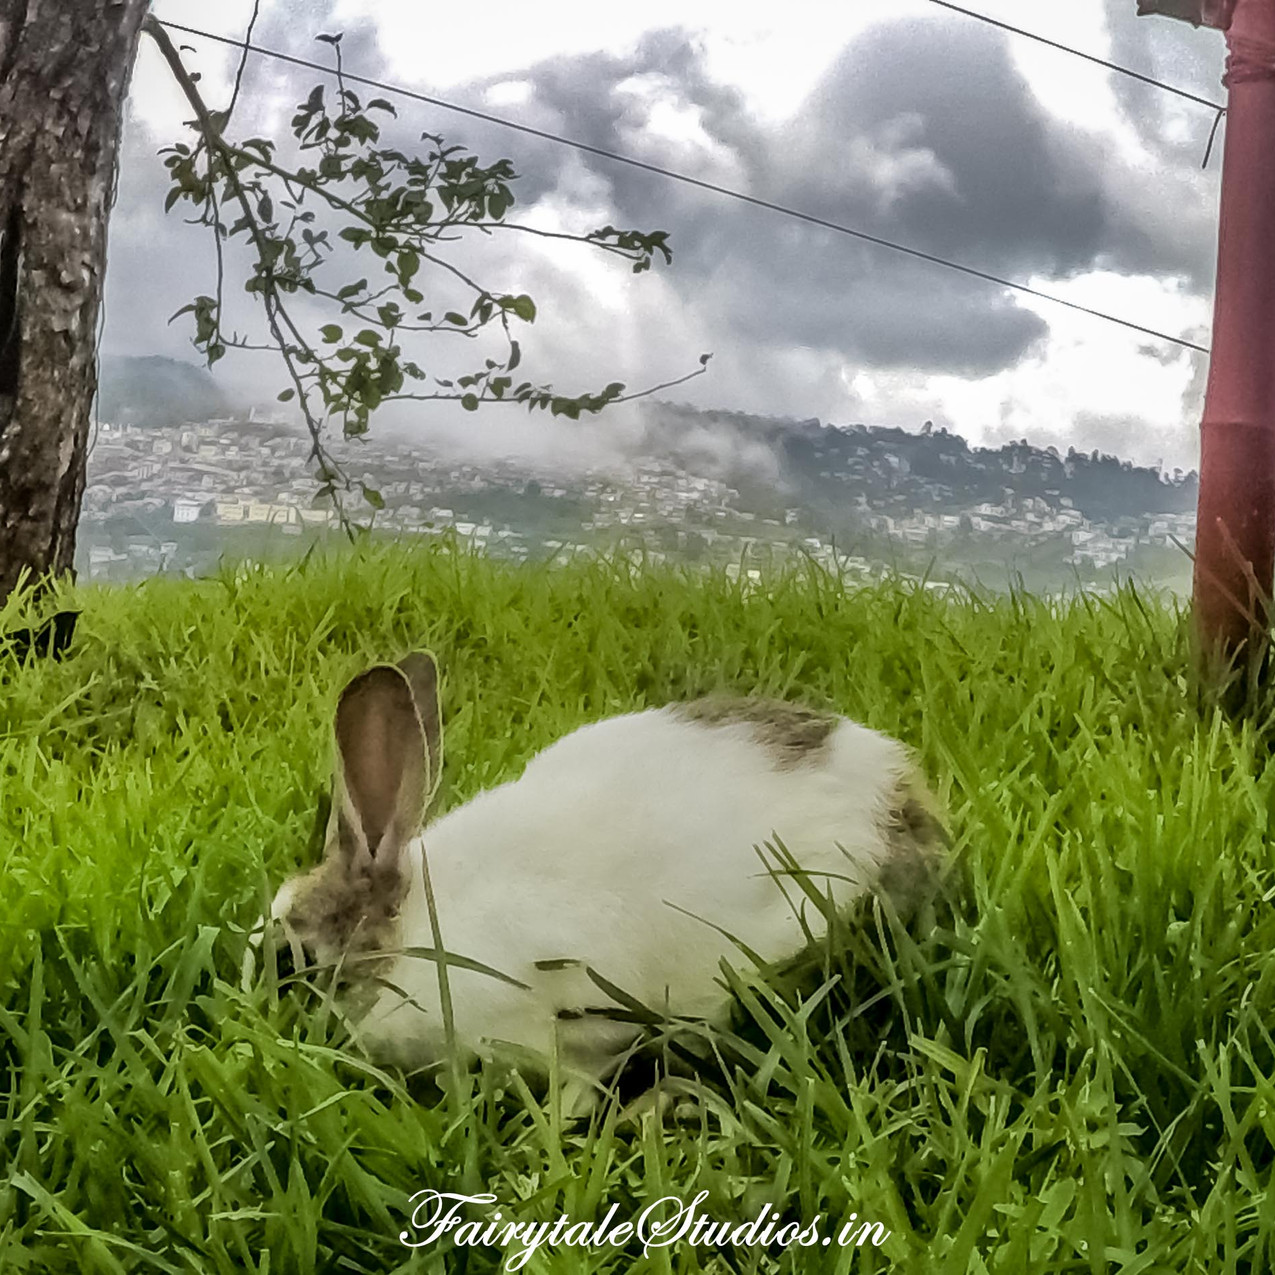 Others_Pear County Kodaikanal_Fairytale Travels